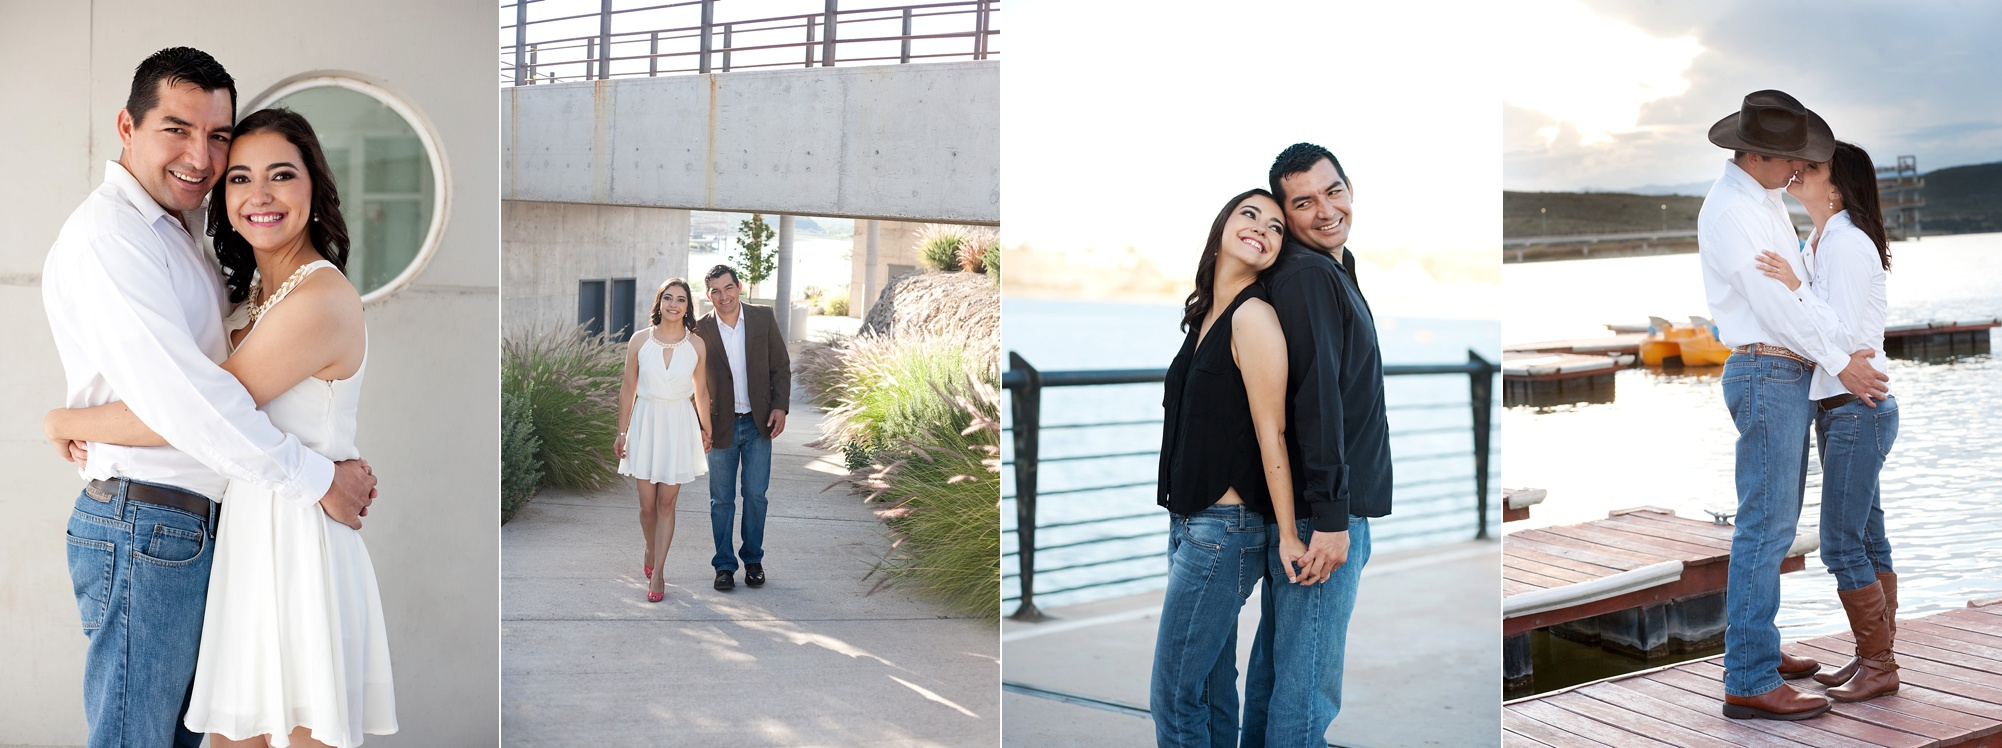 Easy-Poses-for-any-Couple-During-a-Photoshoot-1